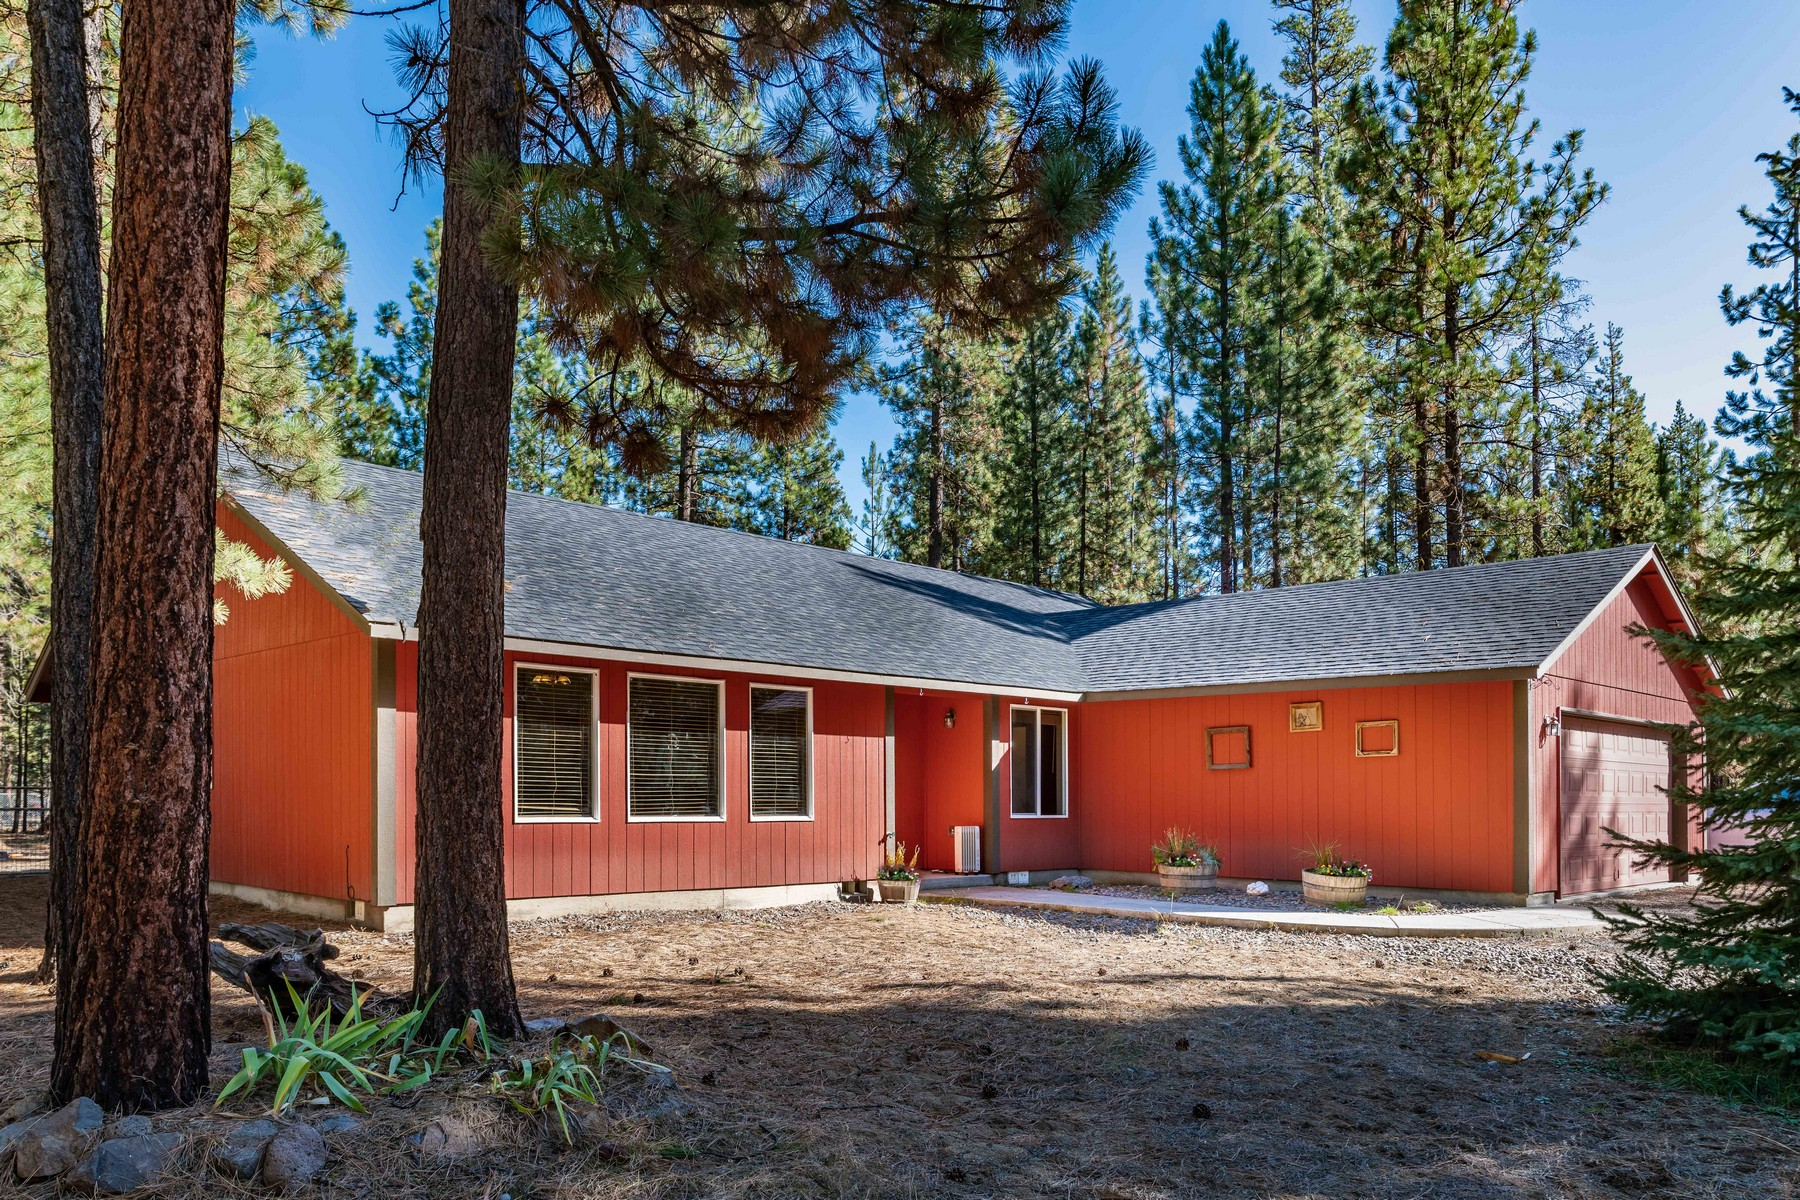 Single Family Homes for Active at 52232 Ponderosa Way La Pine, OR 52232 Ponderosa Way La Pine, Oregon 97739 United States